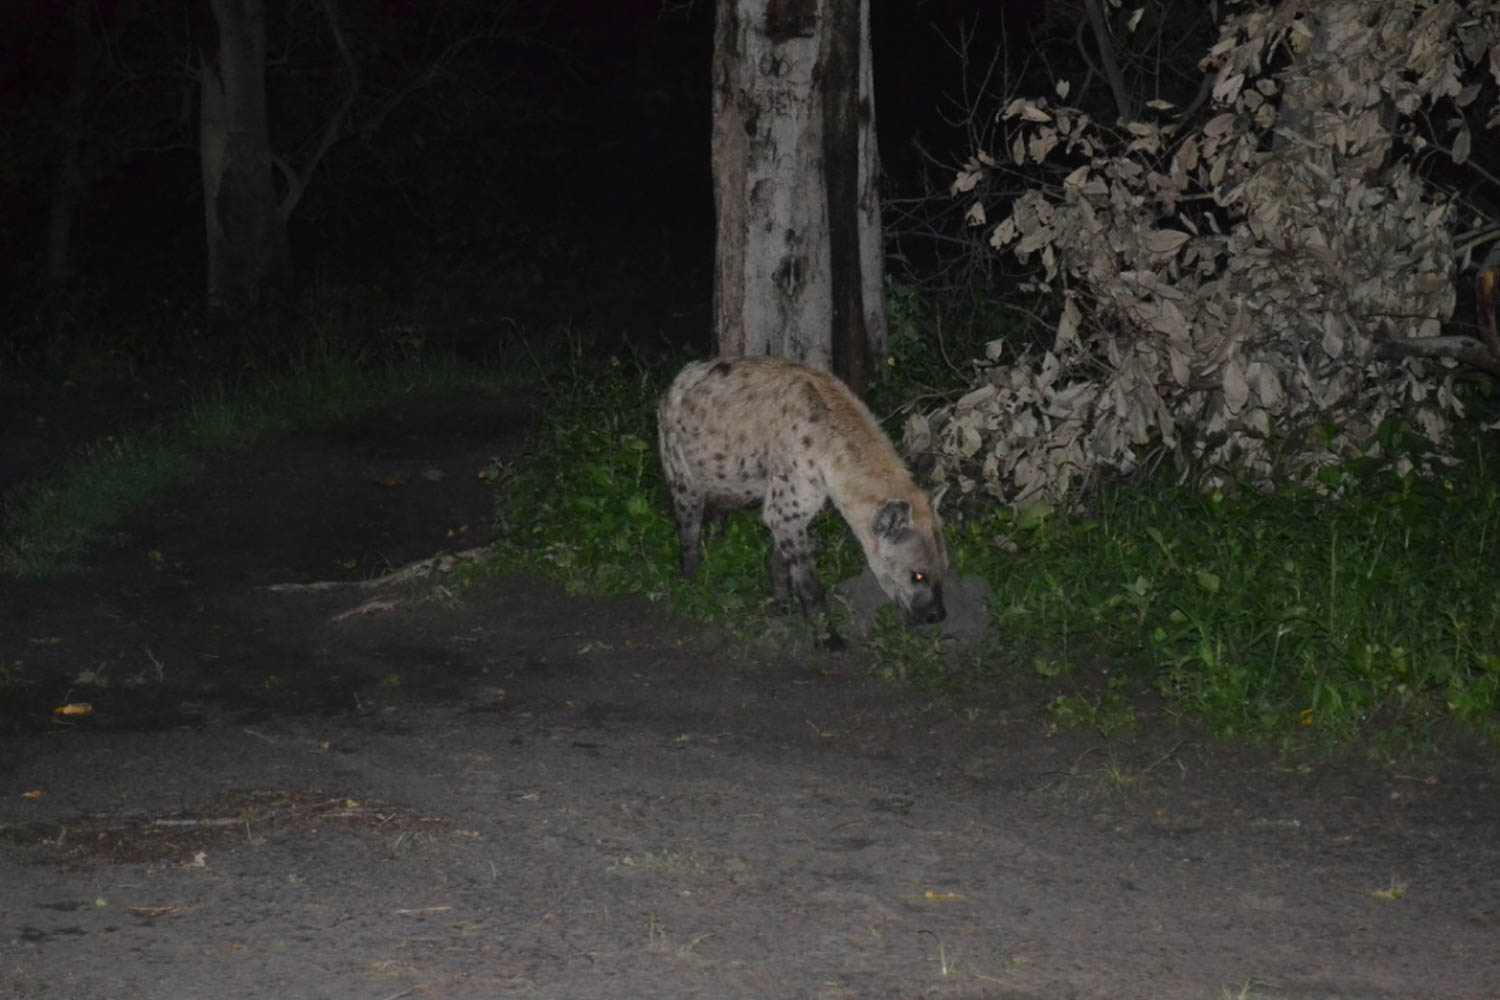 Night game spotting, hyena, with South Africa Overland 4x4 Tours